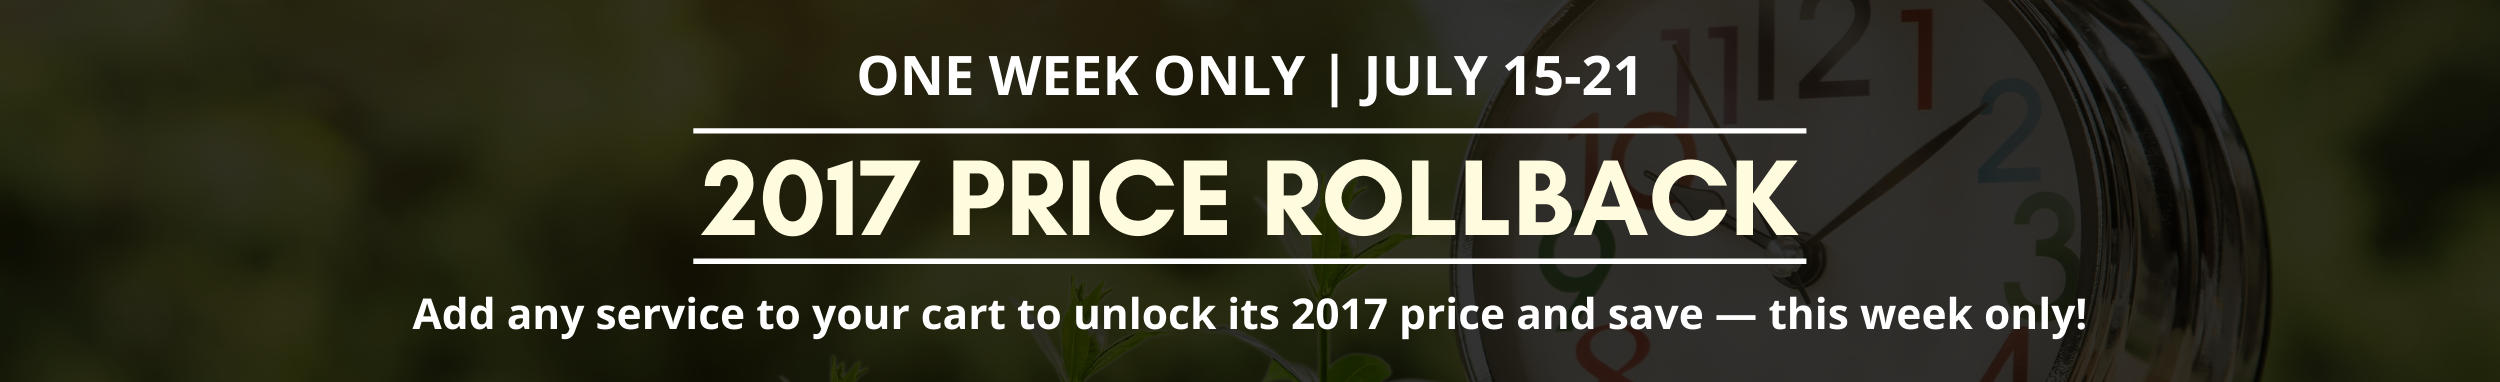 Price Rollback - Banner